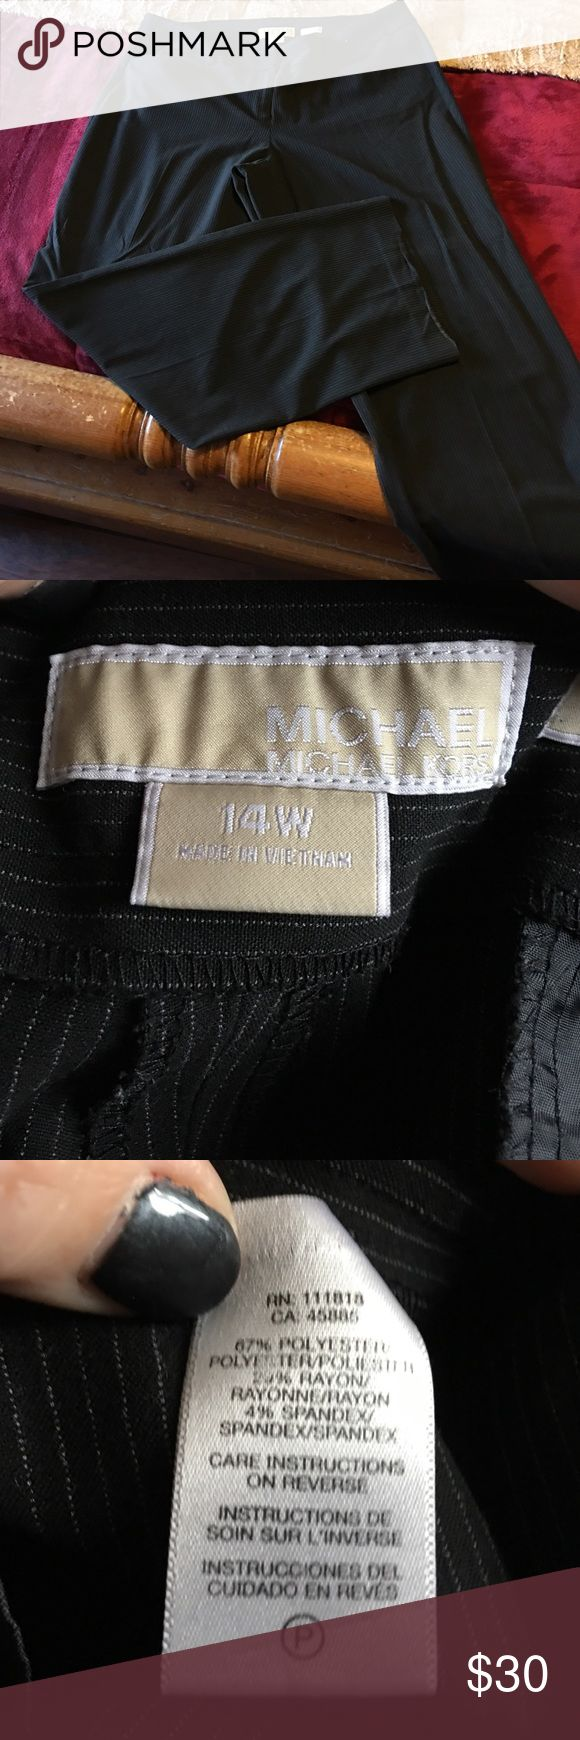 Women's Michael Kors 14W black pinstripe pants. Nice 14w Michael Kors women's trouser pants. These are black with a faint white pinstripe. Very flowing and comfy, look great on! These pants go with everything and would be a fantastic addition to anyone's wardrobe! No rips or tears but do show a little wear in the creases at the hem. Not noticeable when wearing just want to be honest. VERY SLIMMING!!! MICHAEL Michael Kors Pants Trousers